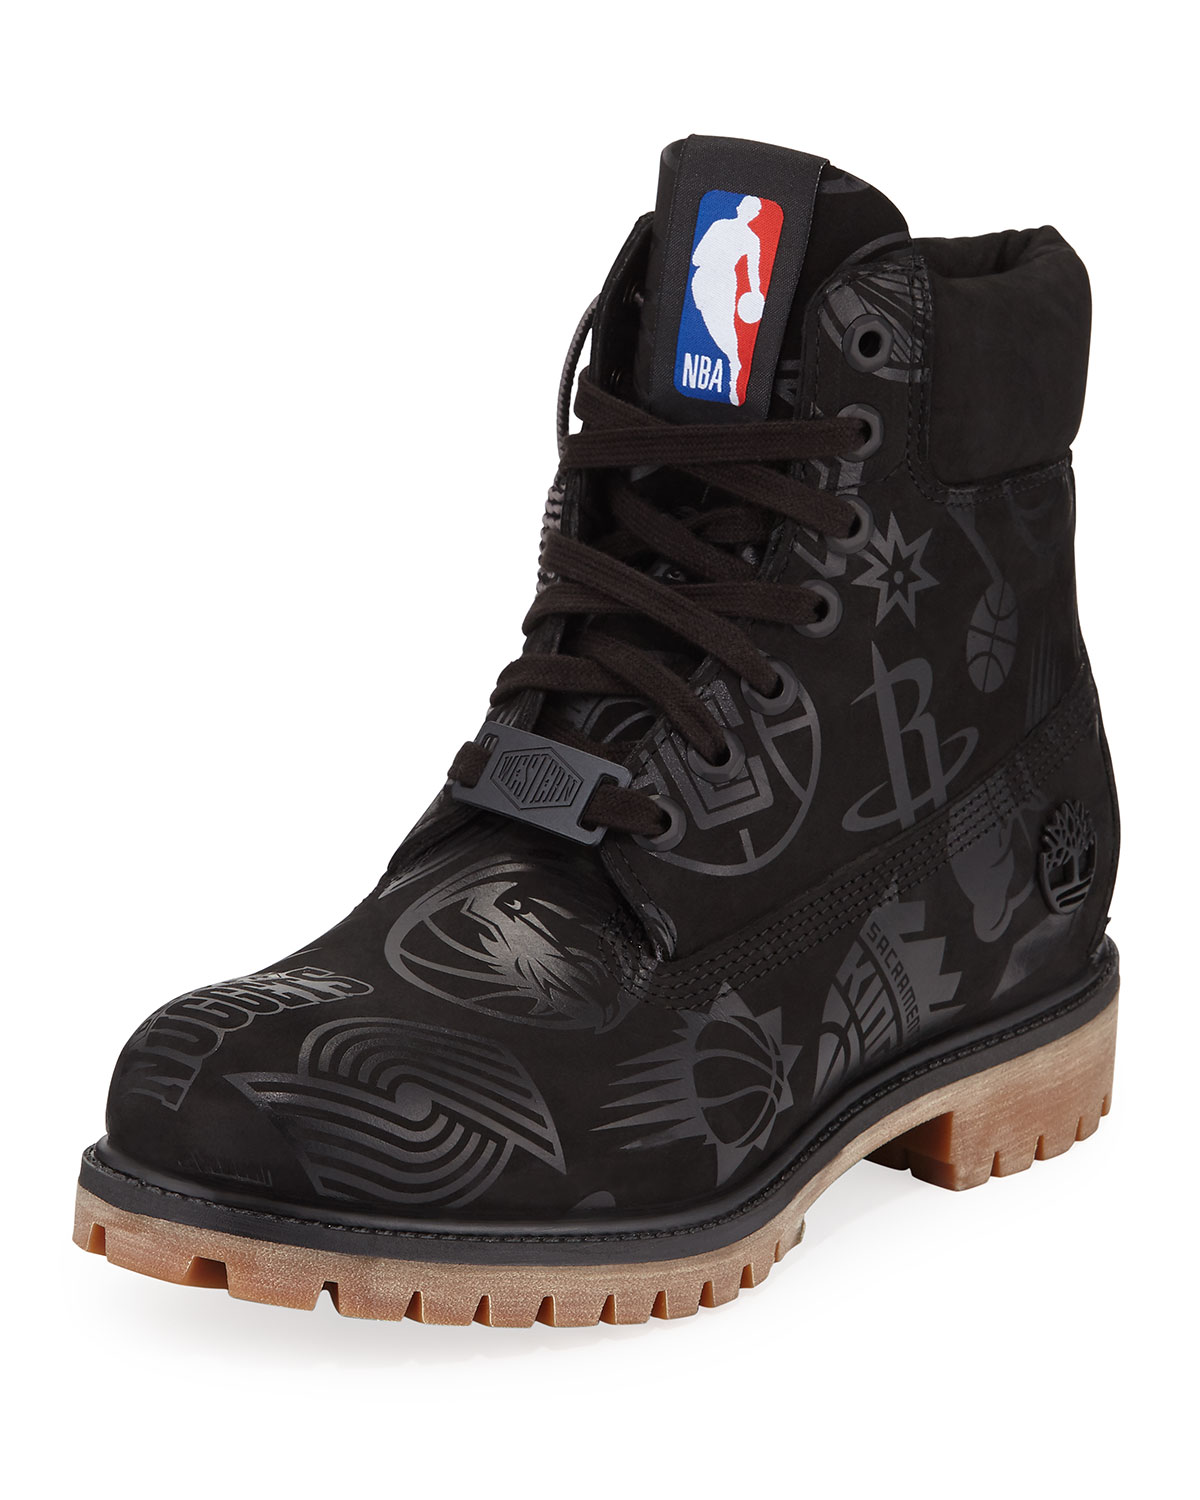 Timberland X Nba 'east Vs West' Stiefel Herren Schuhe Sale